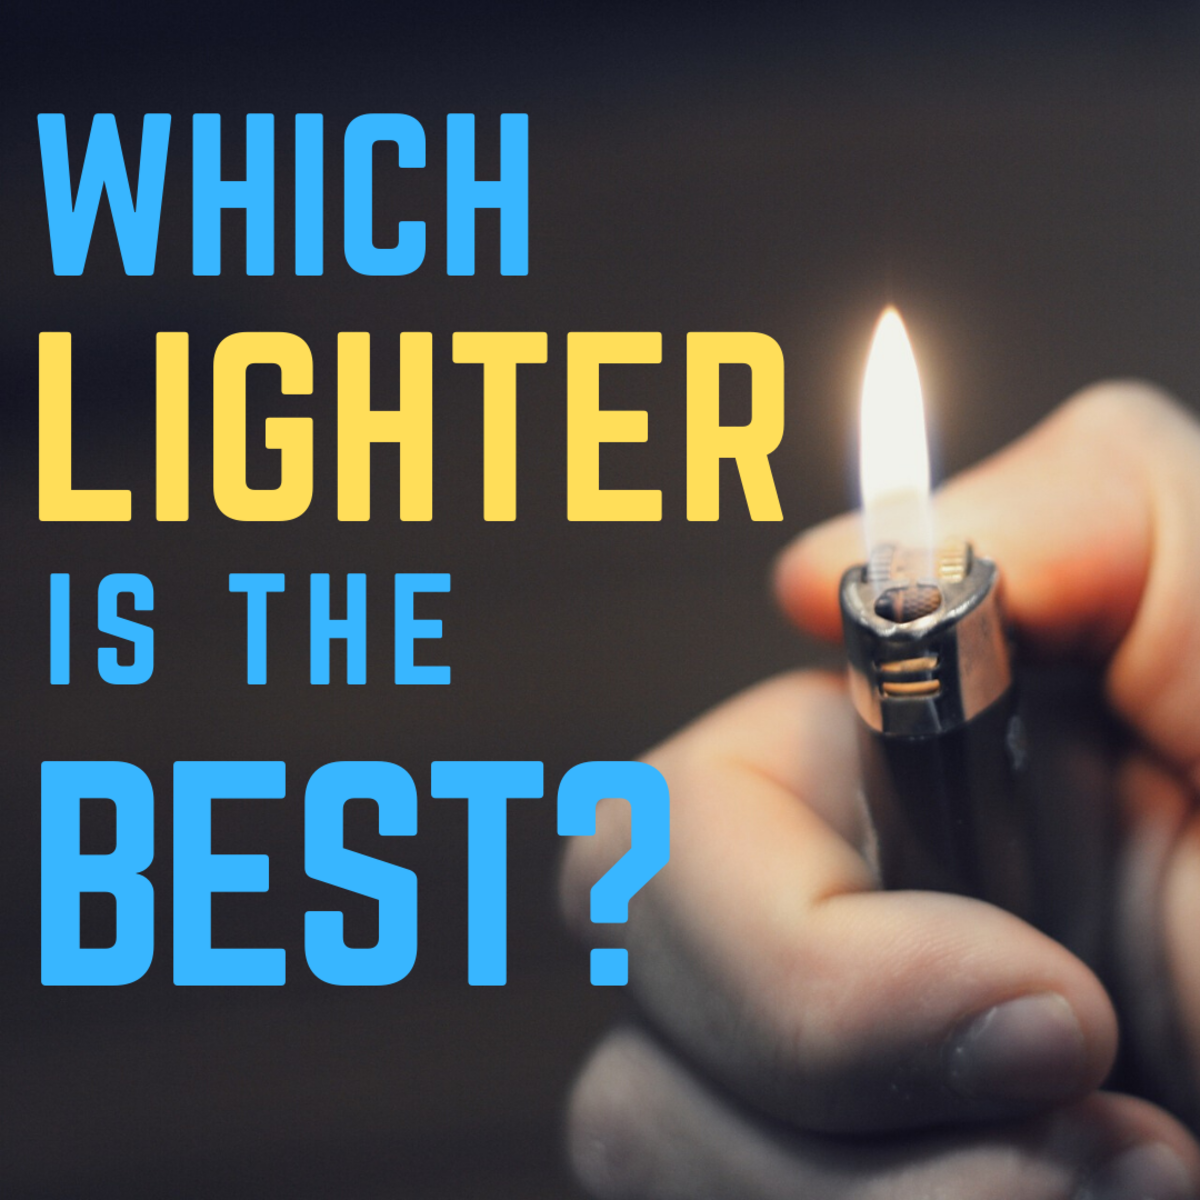 Each of the ten most common lighters have different advantages and drawbacks.